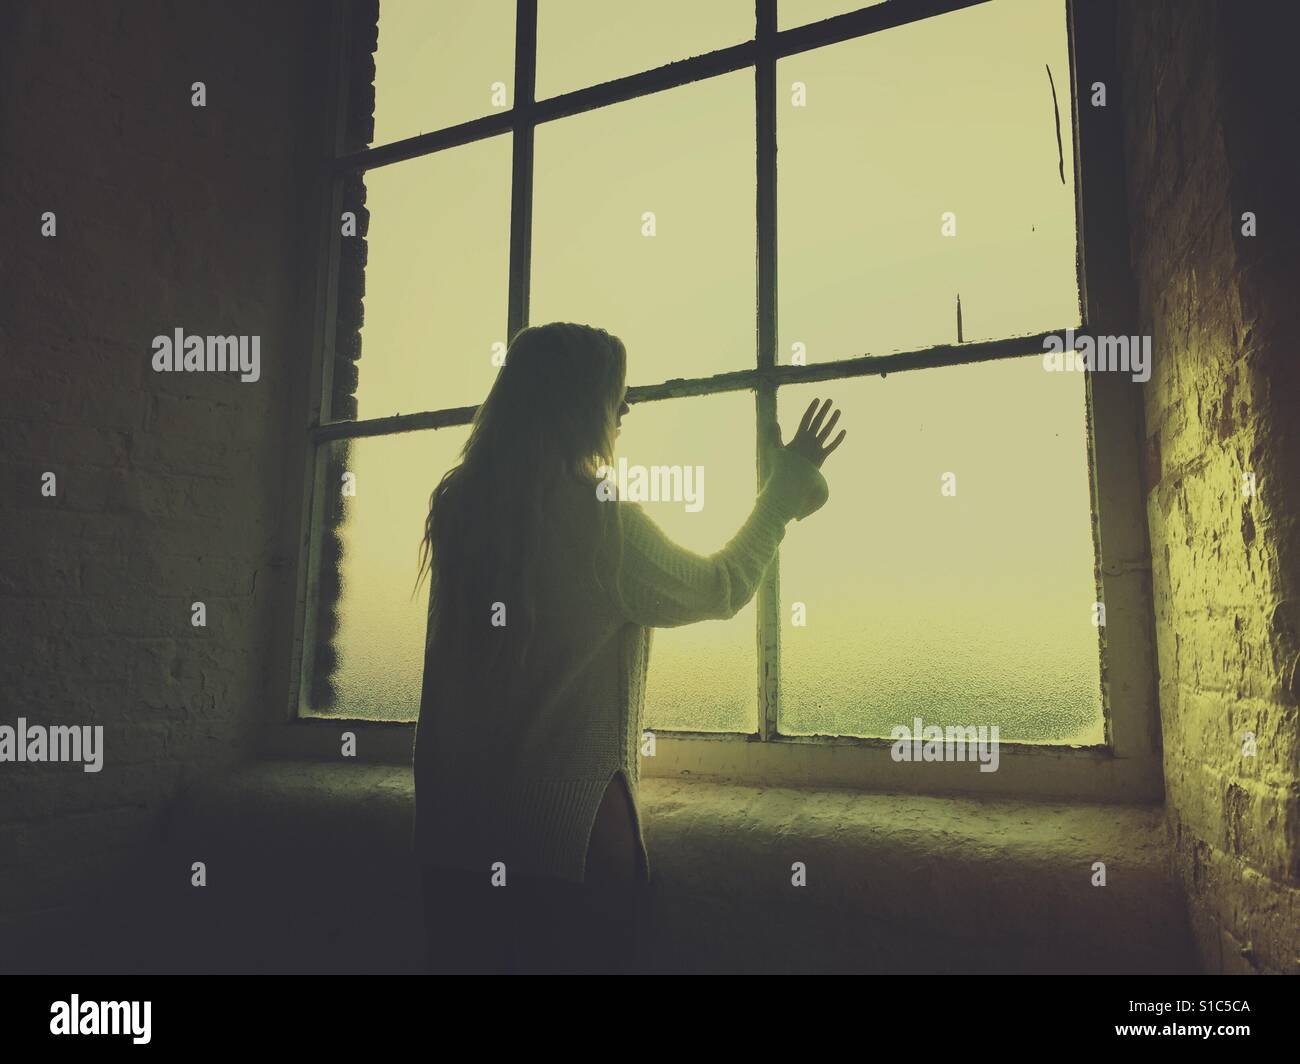 Rear view silhouette of a young woman looking out of the window hand touching the glass - Stock Image